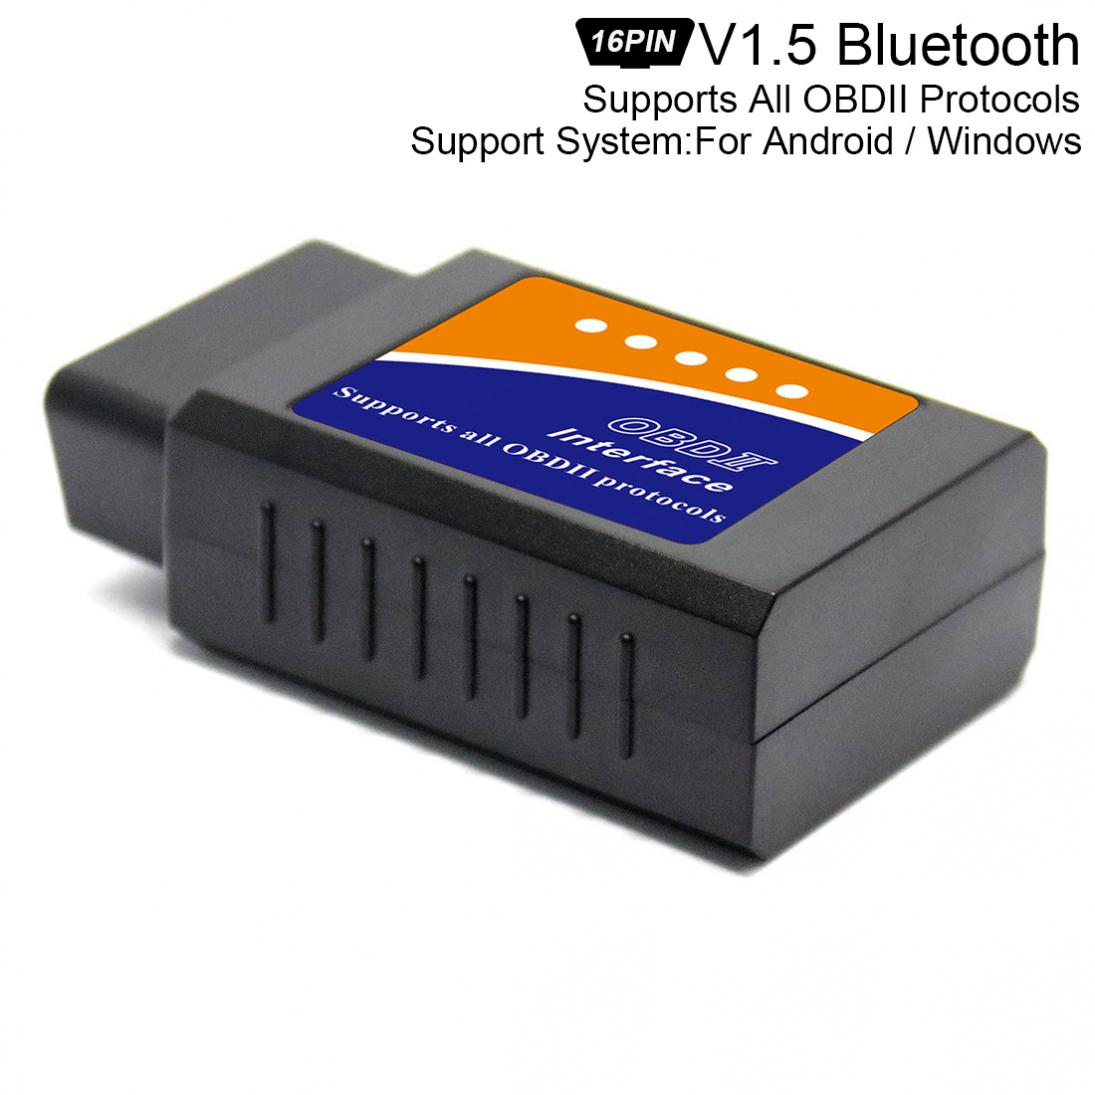 ELM327 V 1,5 Chip Super Mini Bluetooth Scanner Wireless Interface Auto Auto Interface Code Leser Diagnose Werkzeug OBDII Protokolle